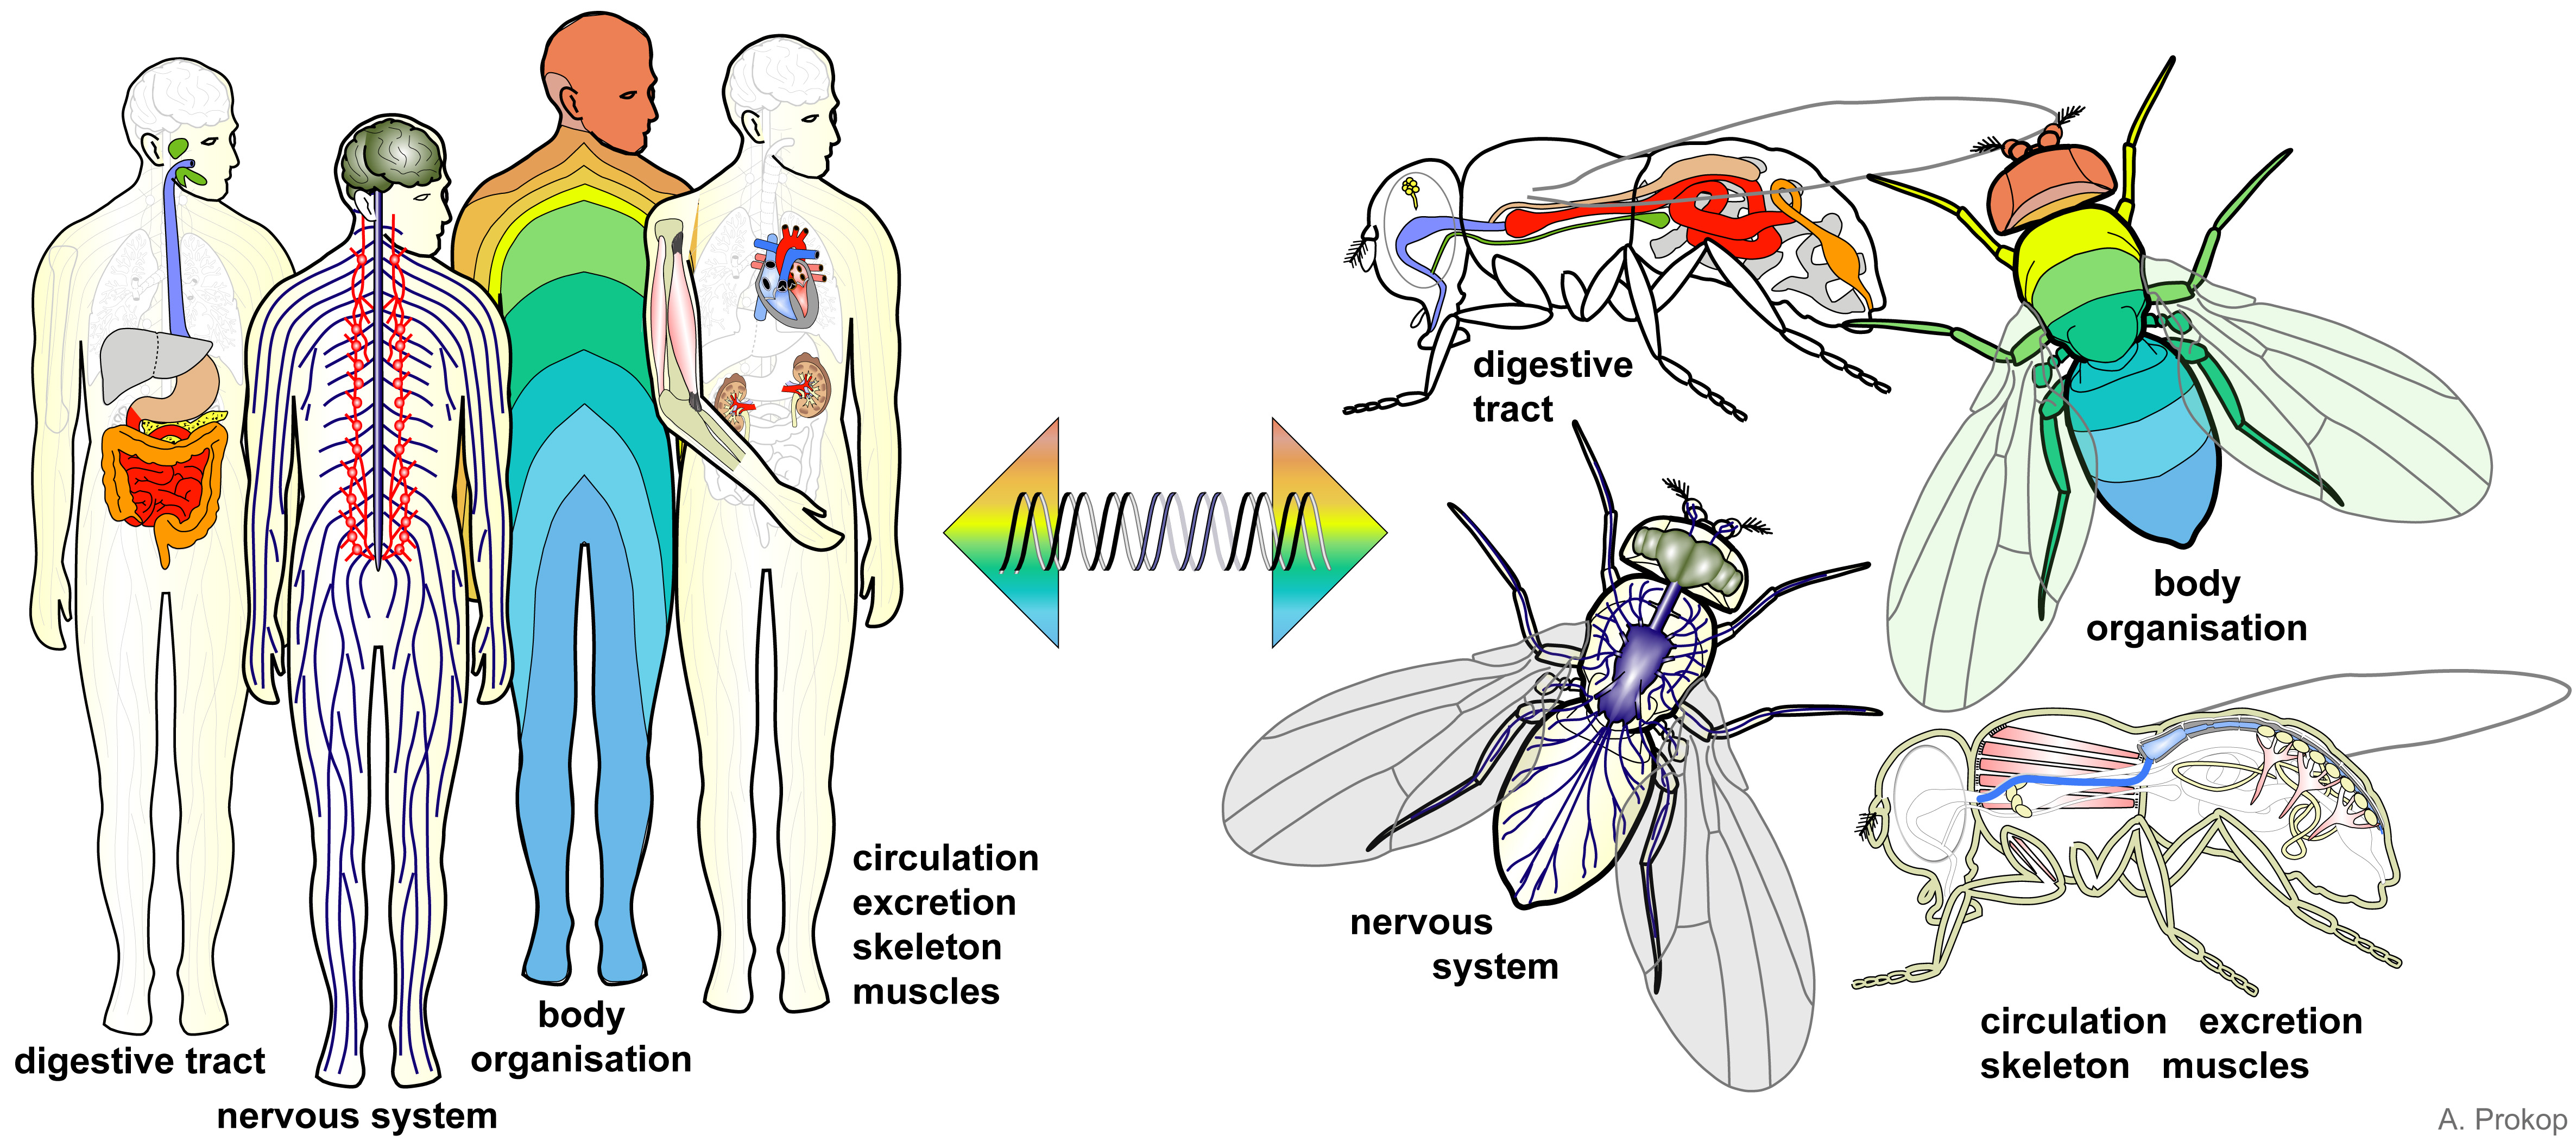 Bringing Life Into Biology Lessons Using The Fruit Fly